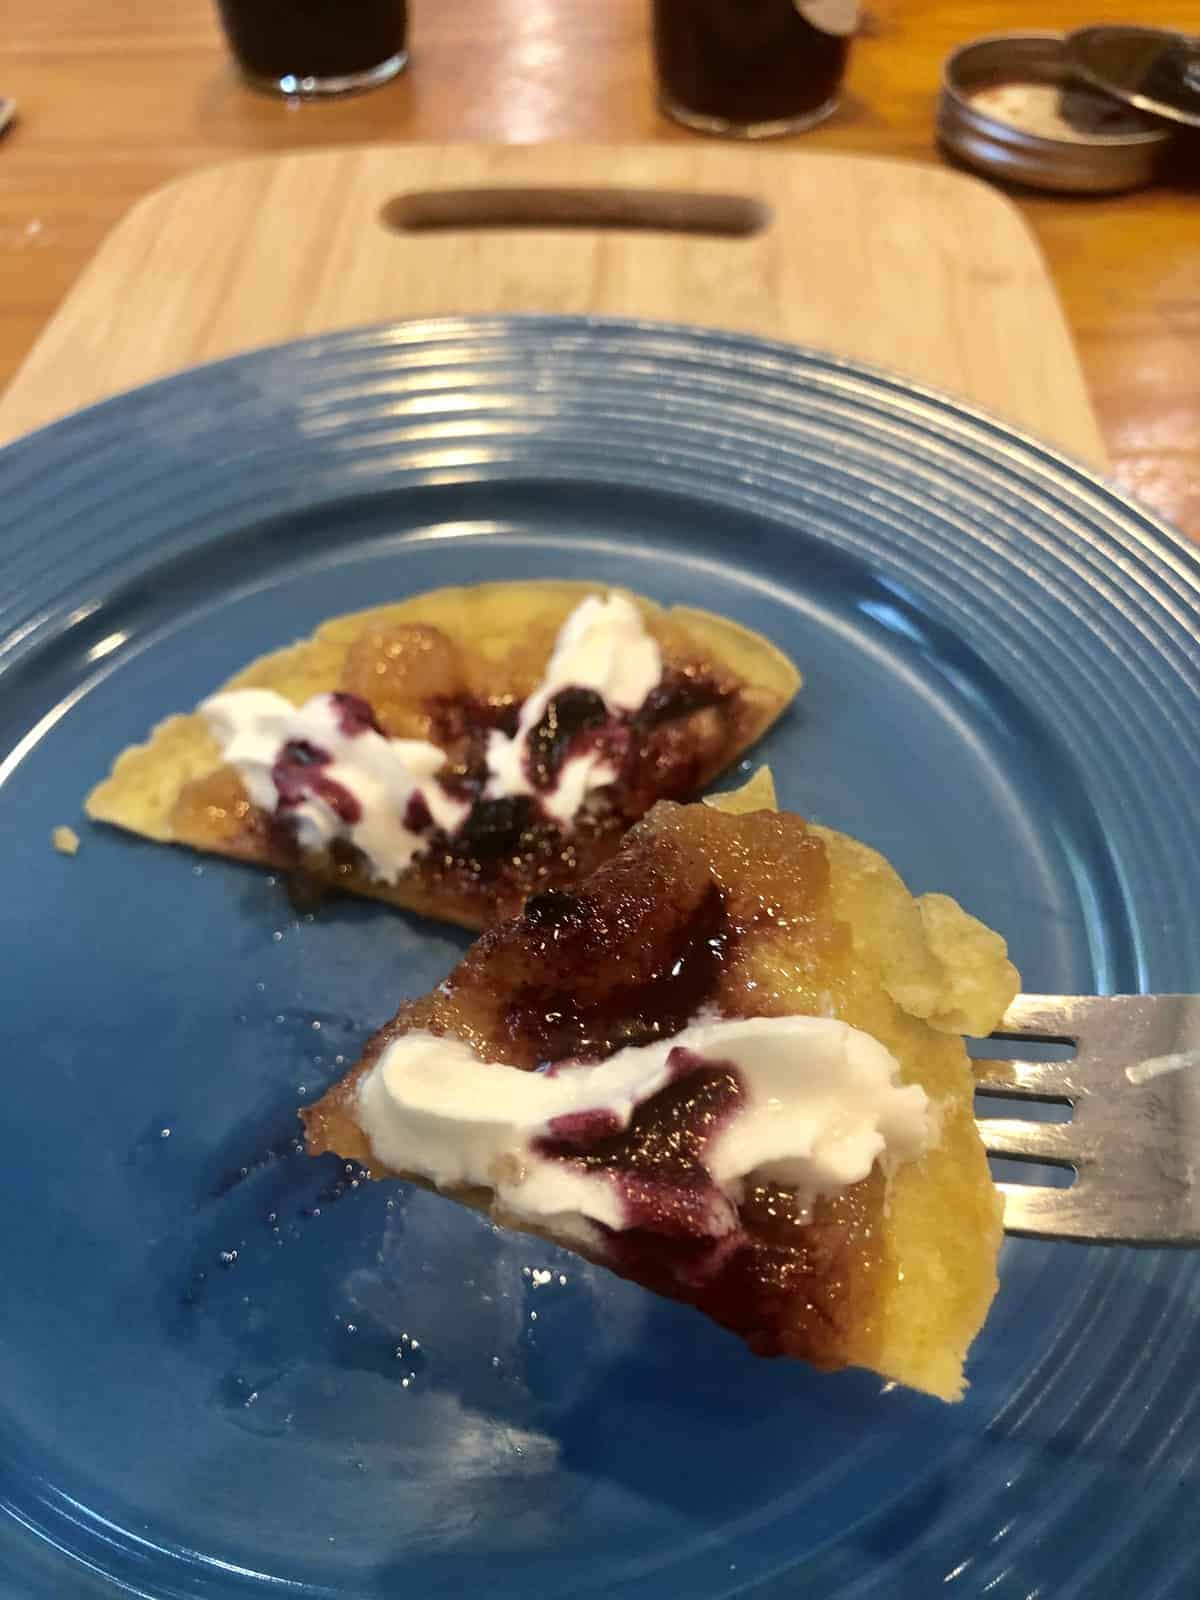 A Crepe Pizza with whipped cream and jam on a fork over a blue plate